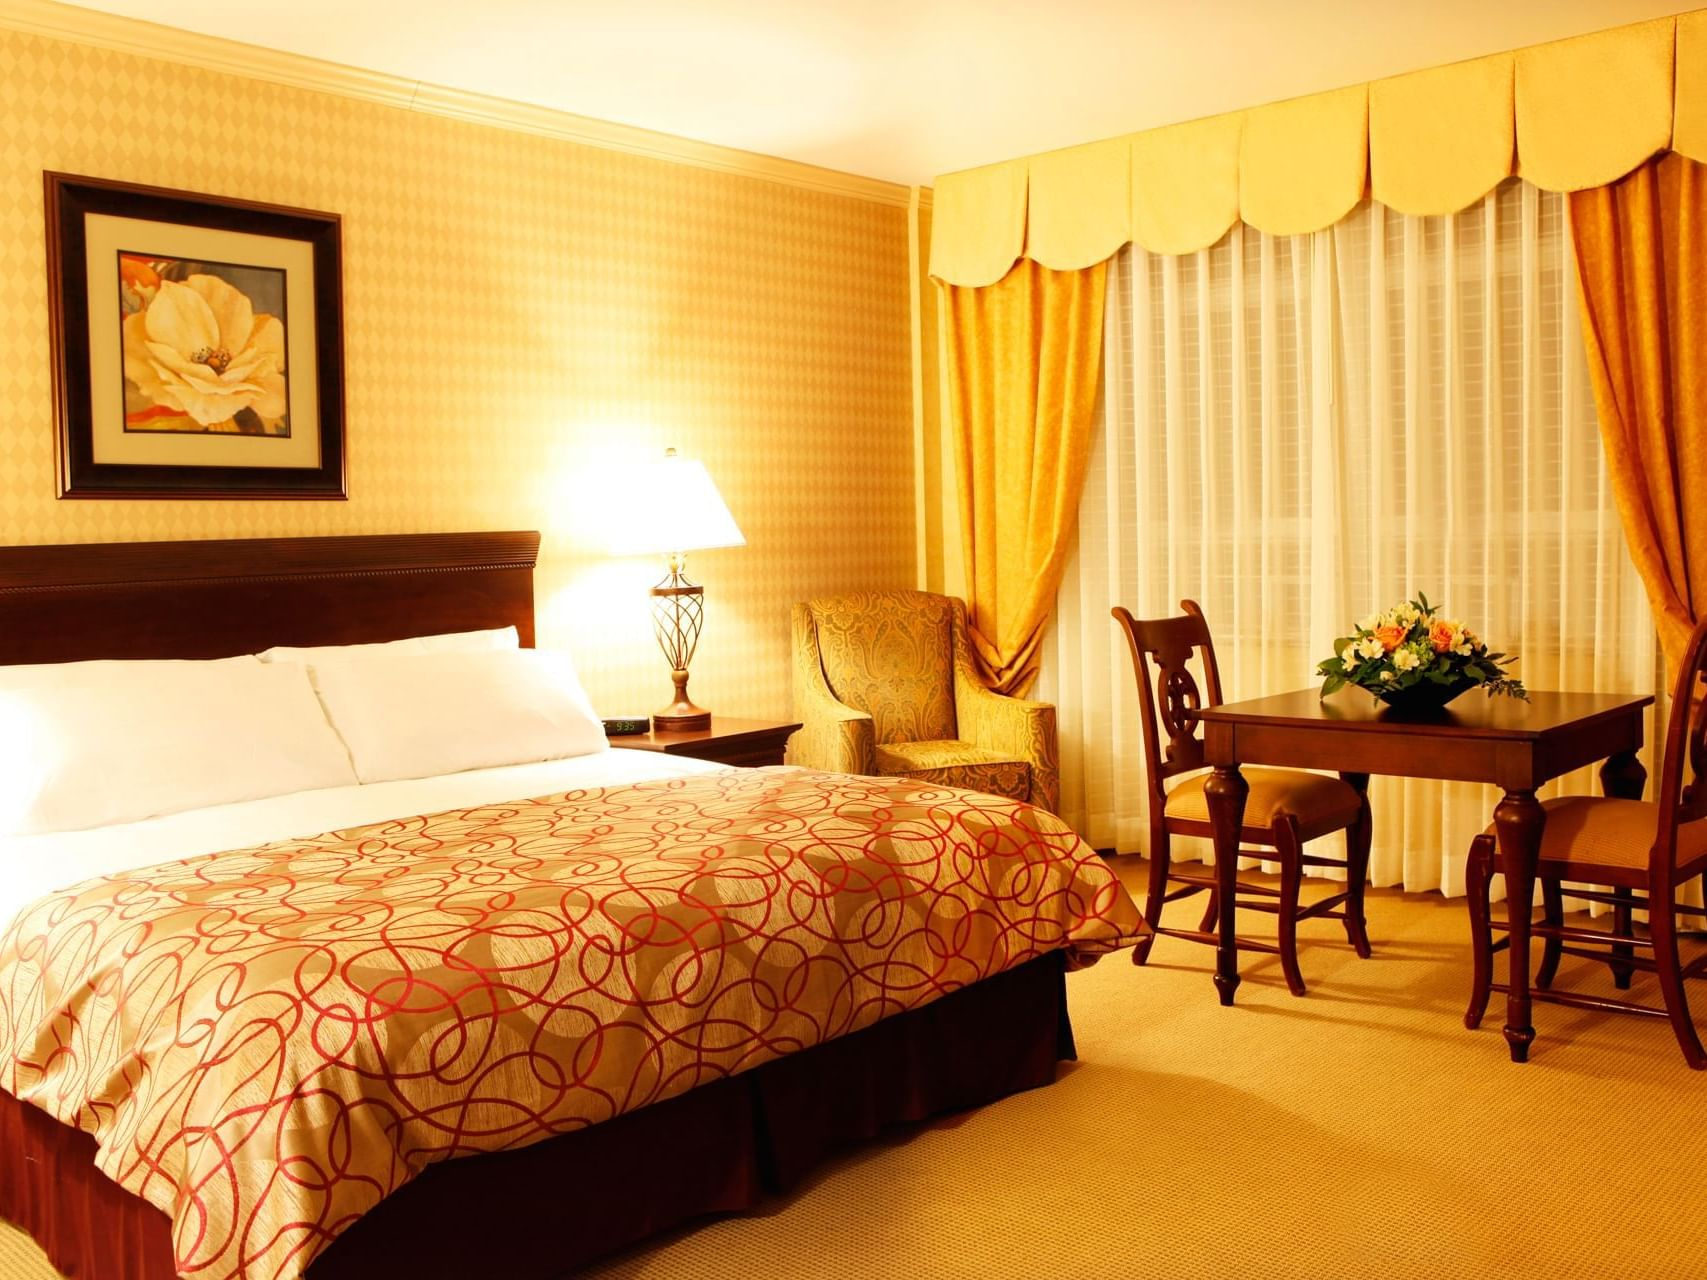 Bed and dining table in hotel room